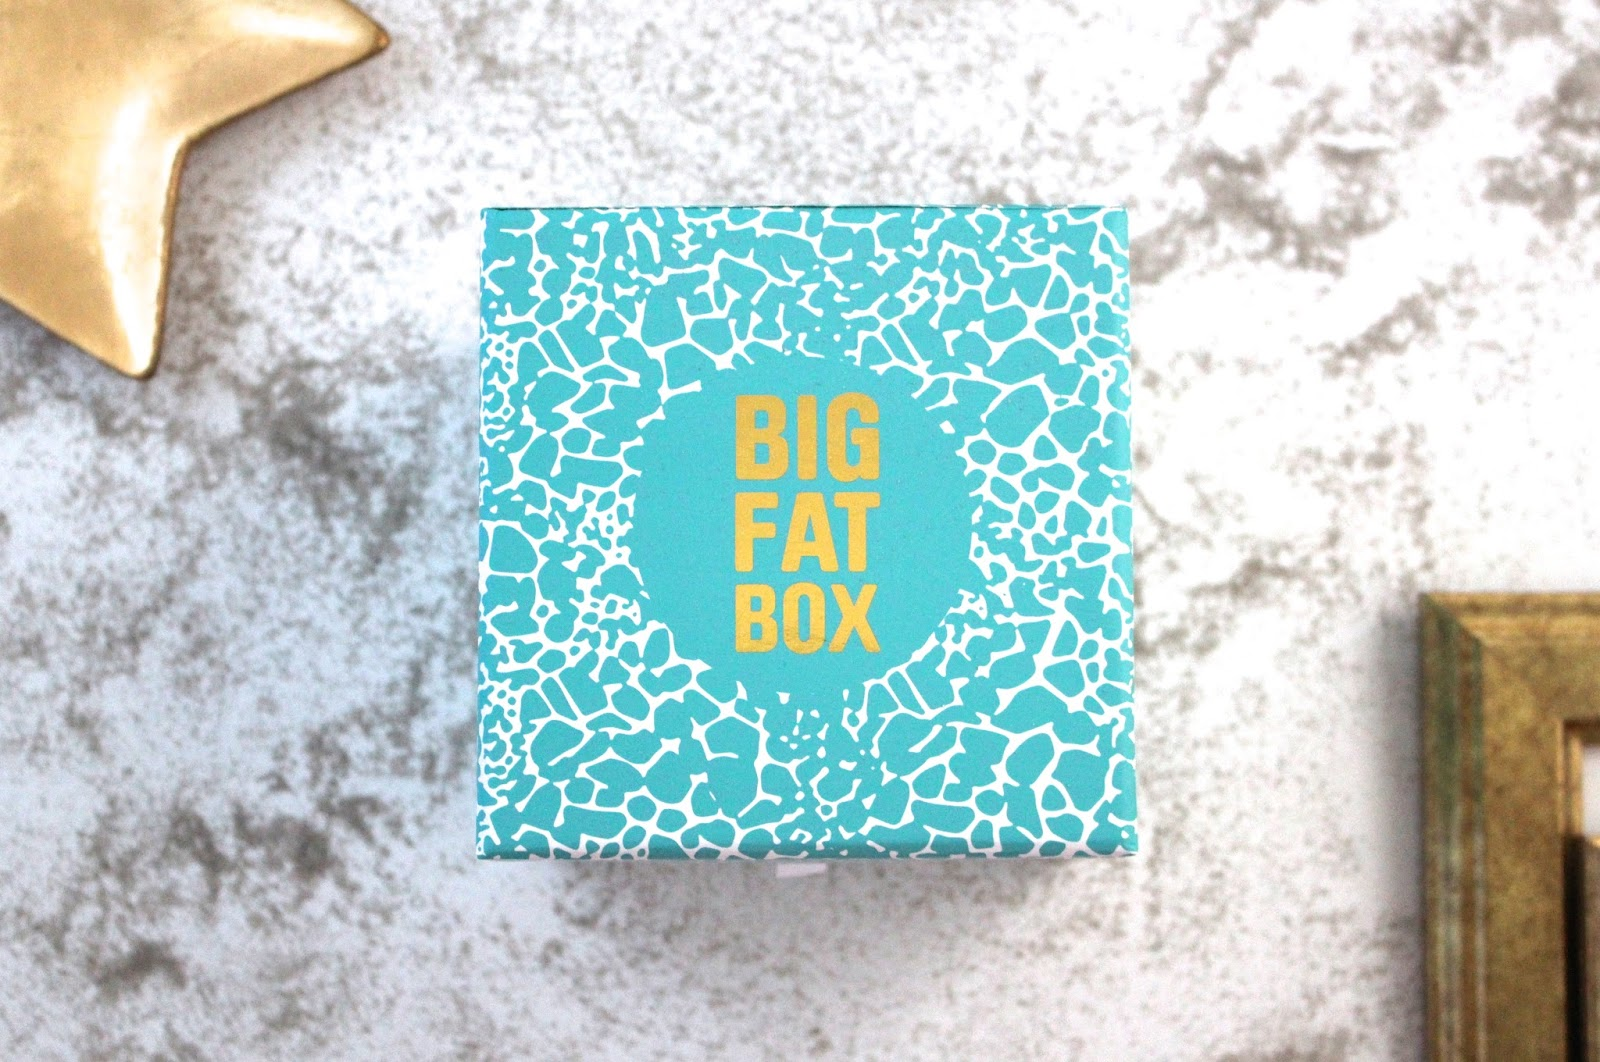 Cheerz Big Fat Box Review